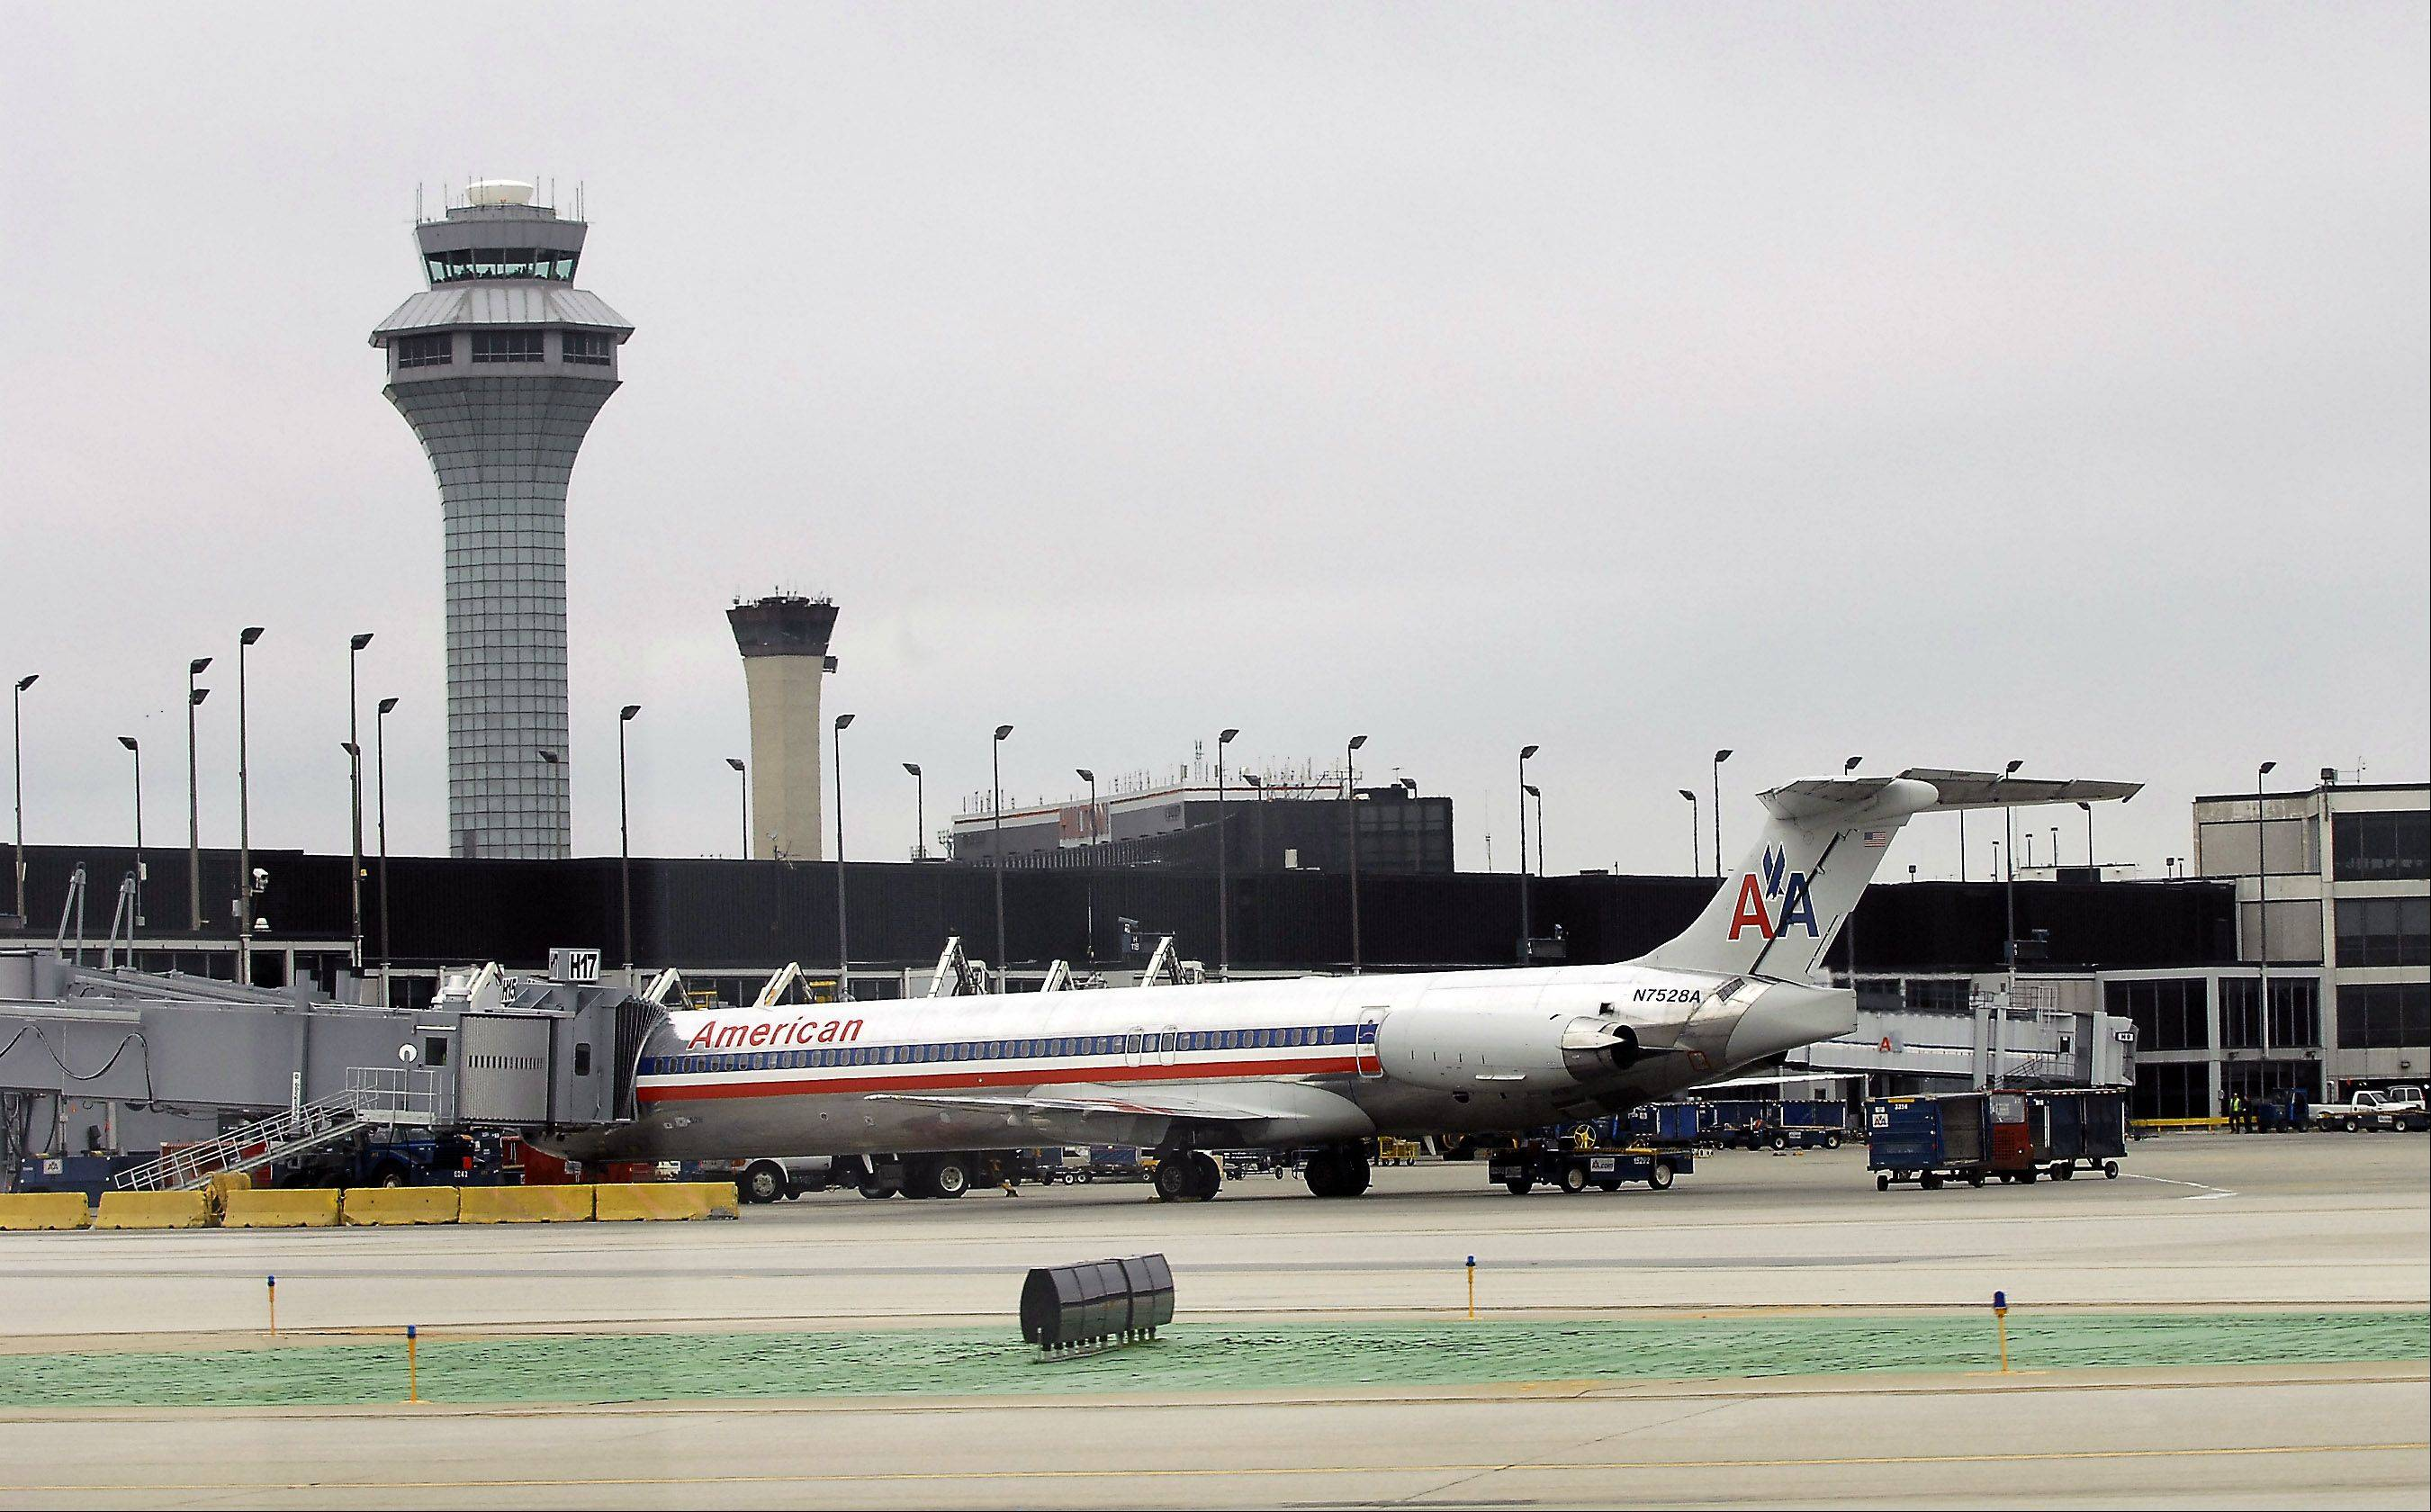 Bad weather on the East Coast is affecting air traffic at O'Hare.